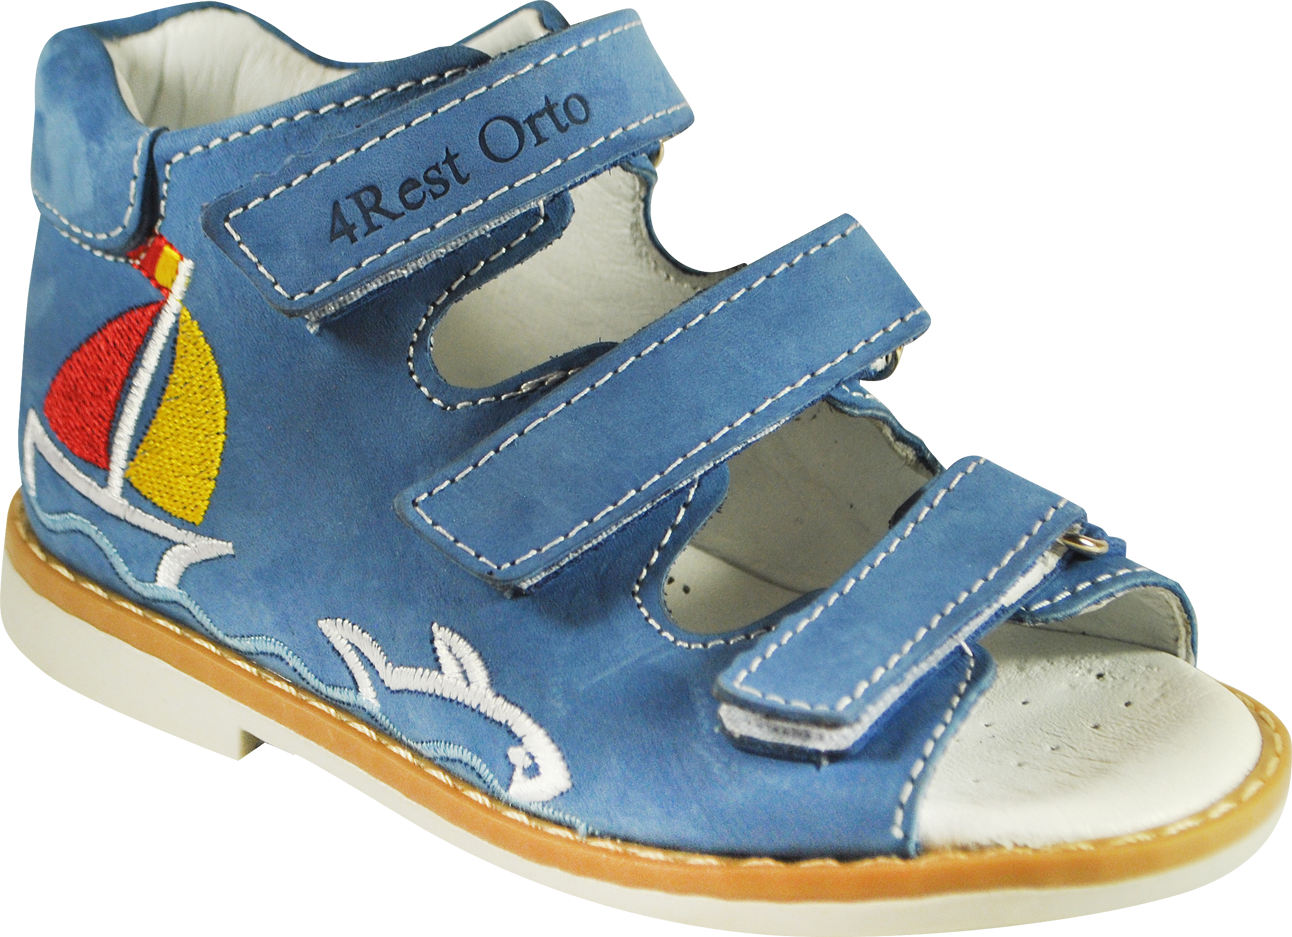 Orthopedic Sandals 06-114  size 21-30 - 1